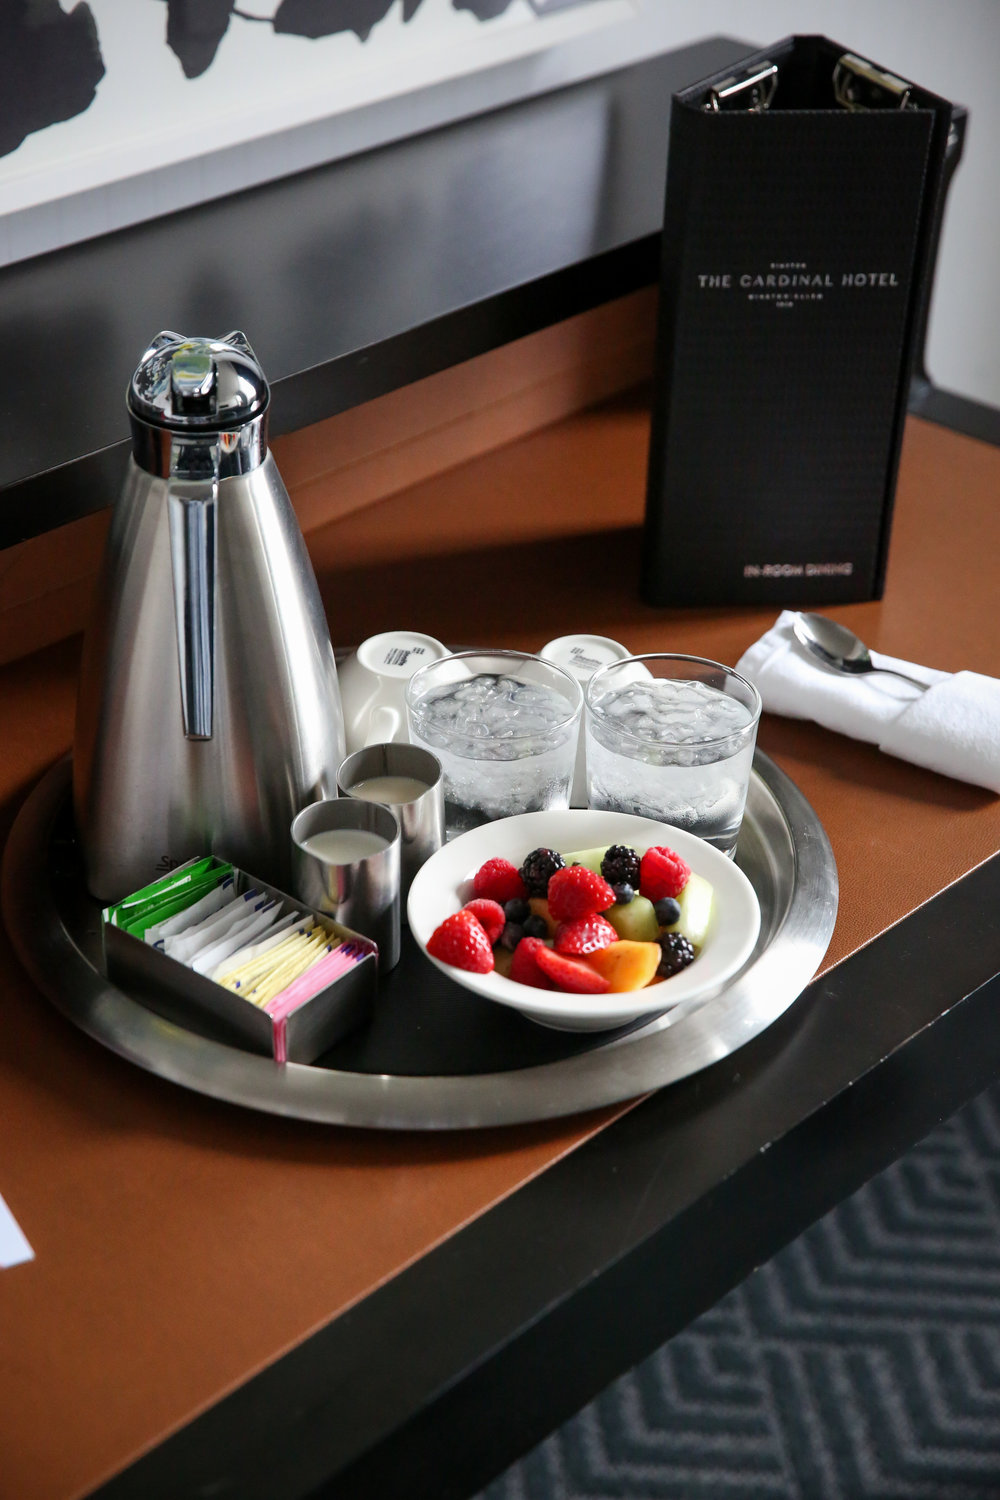 Kimpton-Cardinal-Hotel-Coffee-Fruit-Room-Service-Lauren-Schwaiger-Blog.jpg